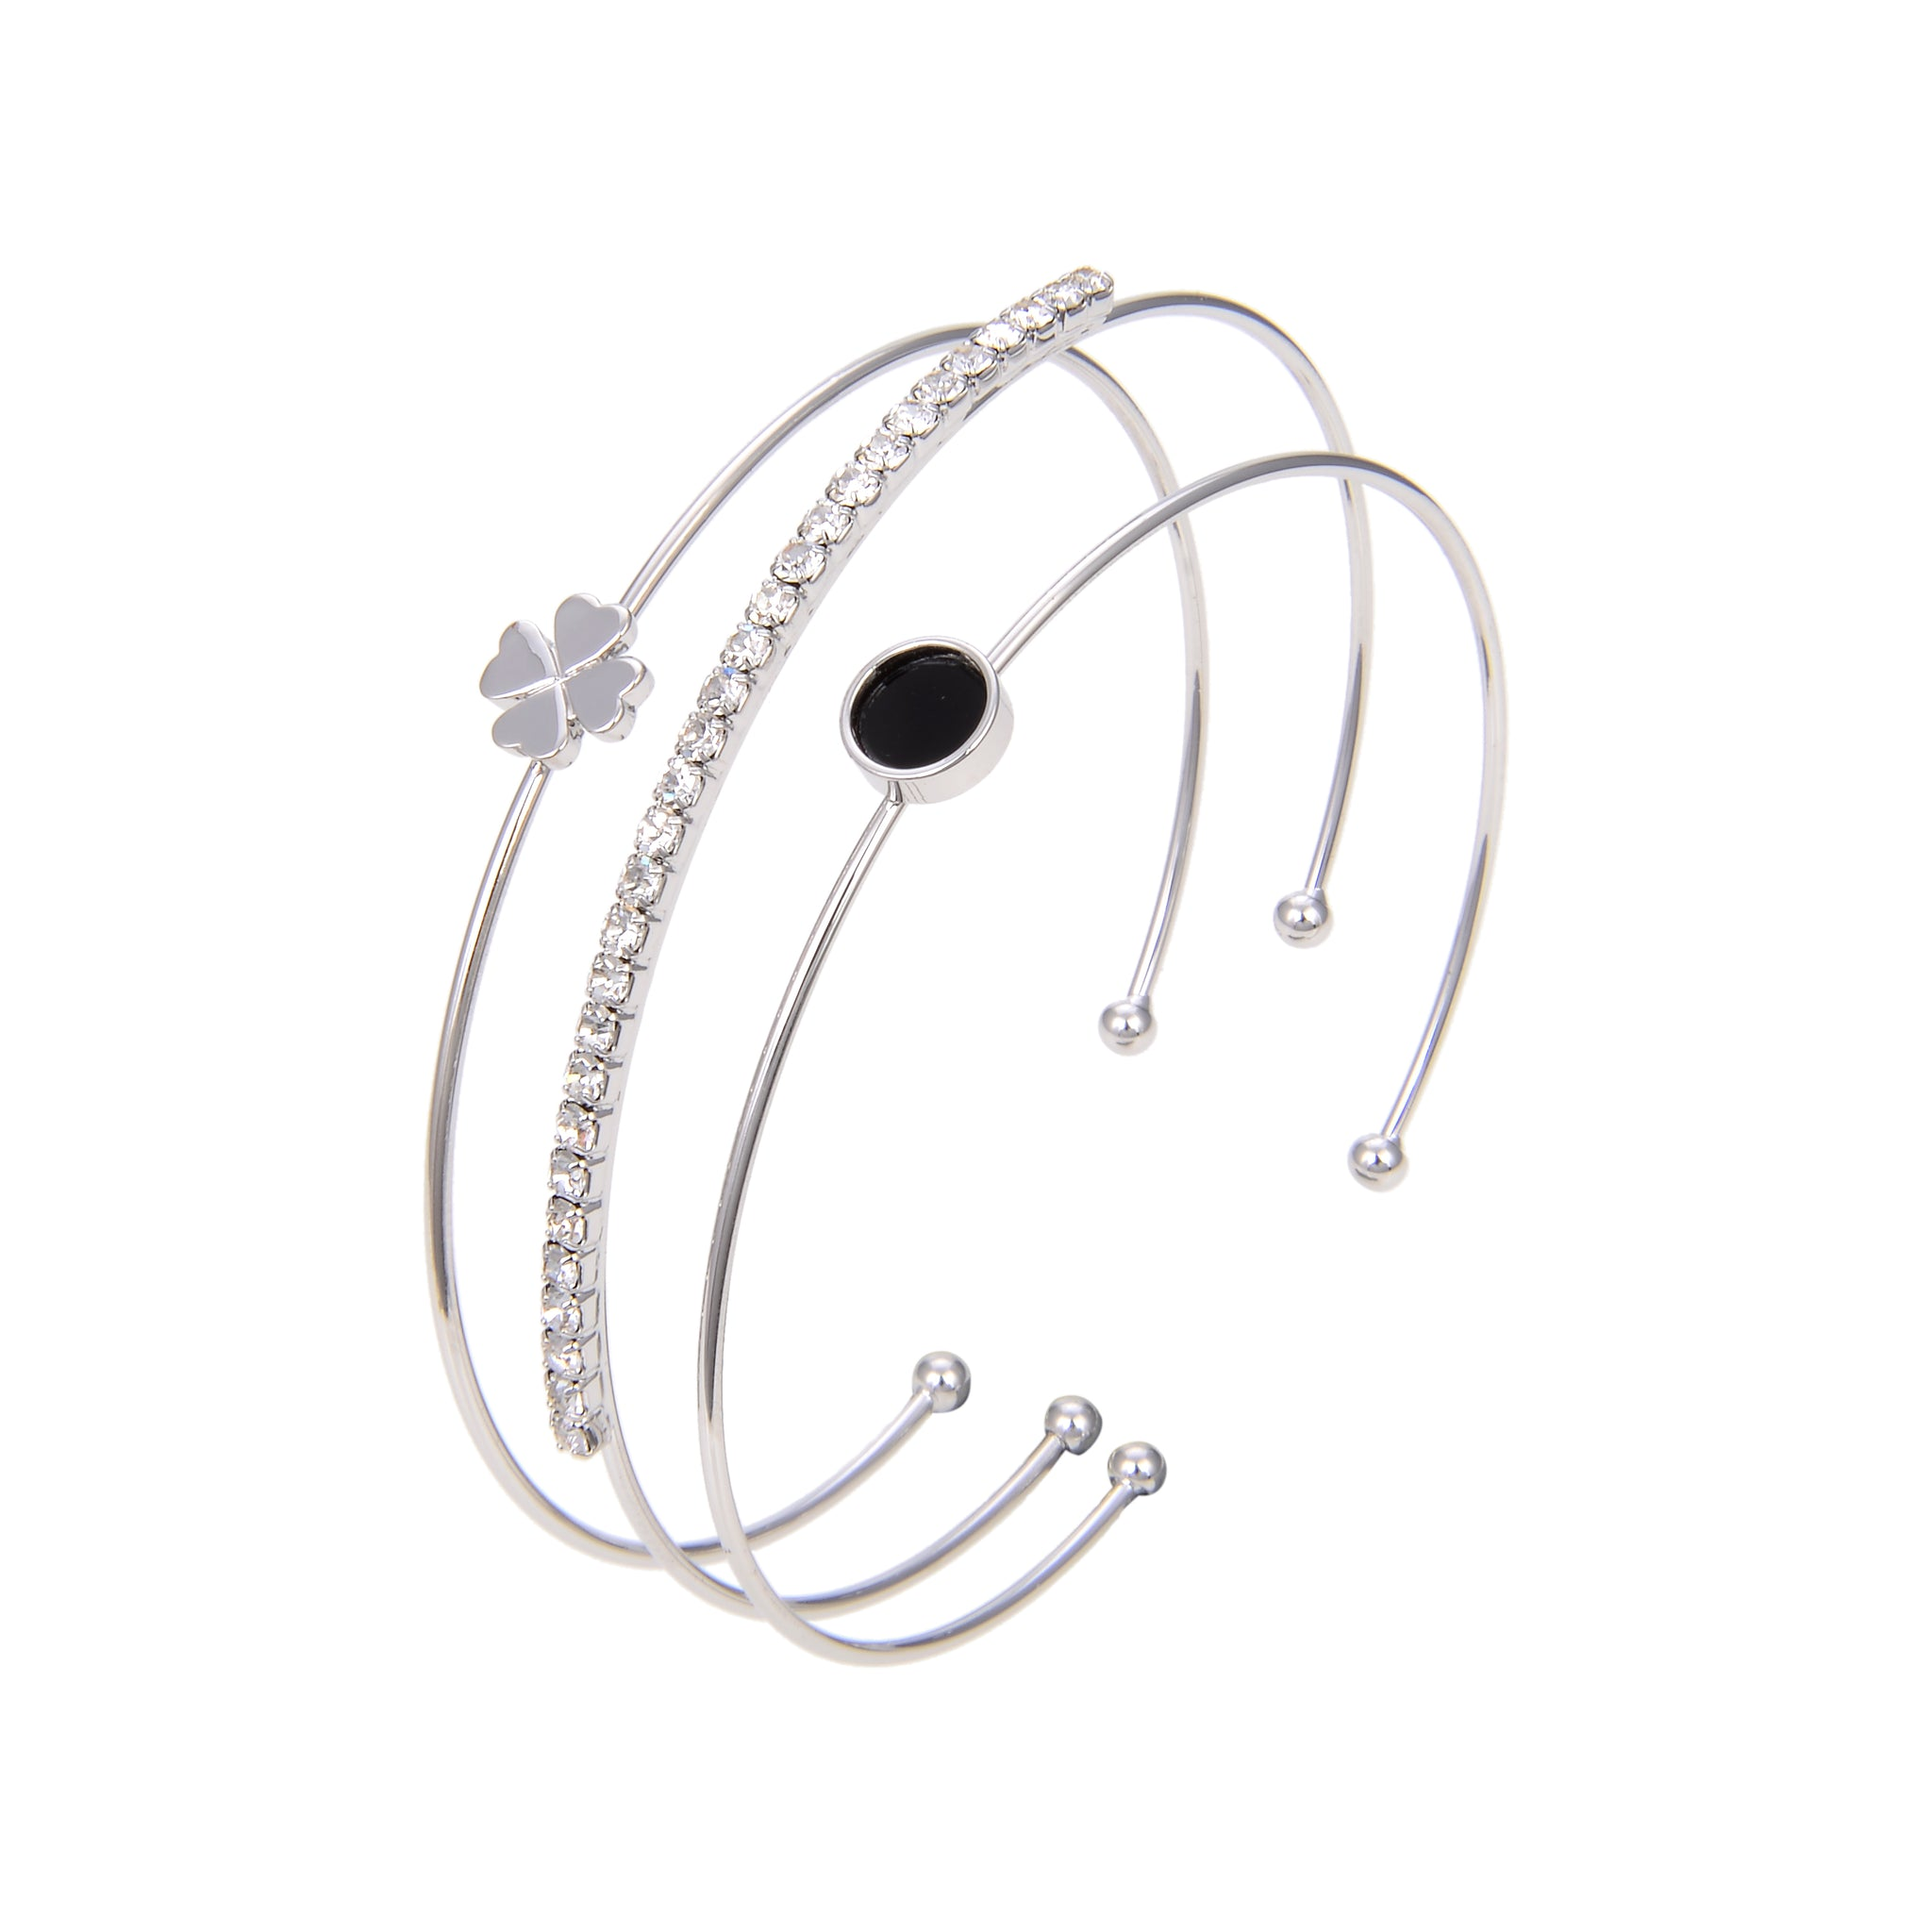 Silver Plated Cubic Zirconia Bangle Bracelet, CZ With Black Stone Bangle Bracelet